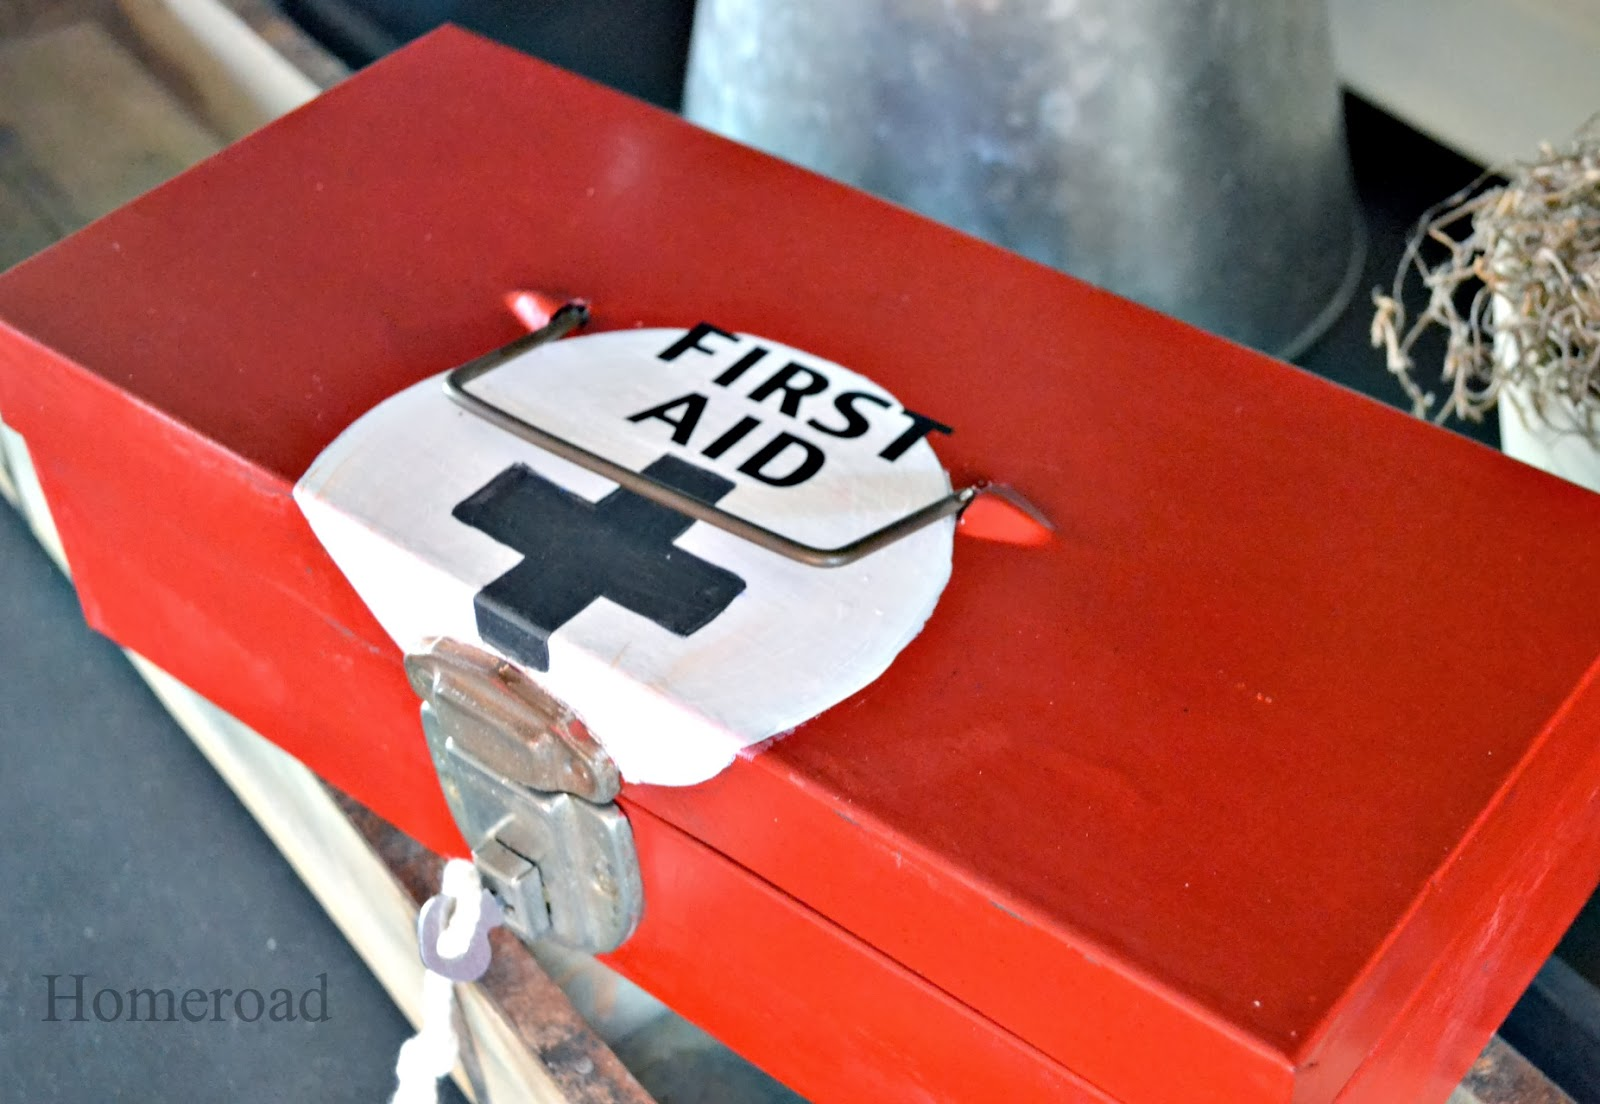 metal first aid box www.homeroad.net